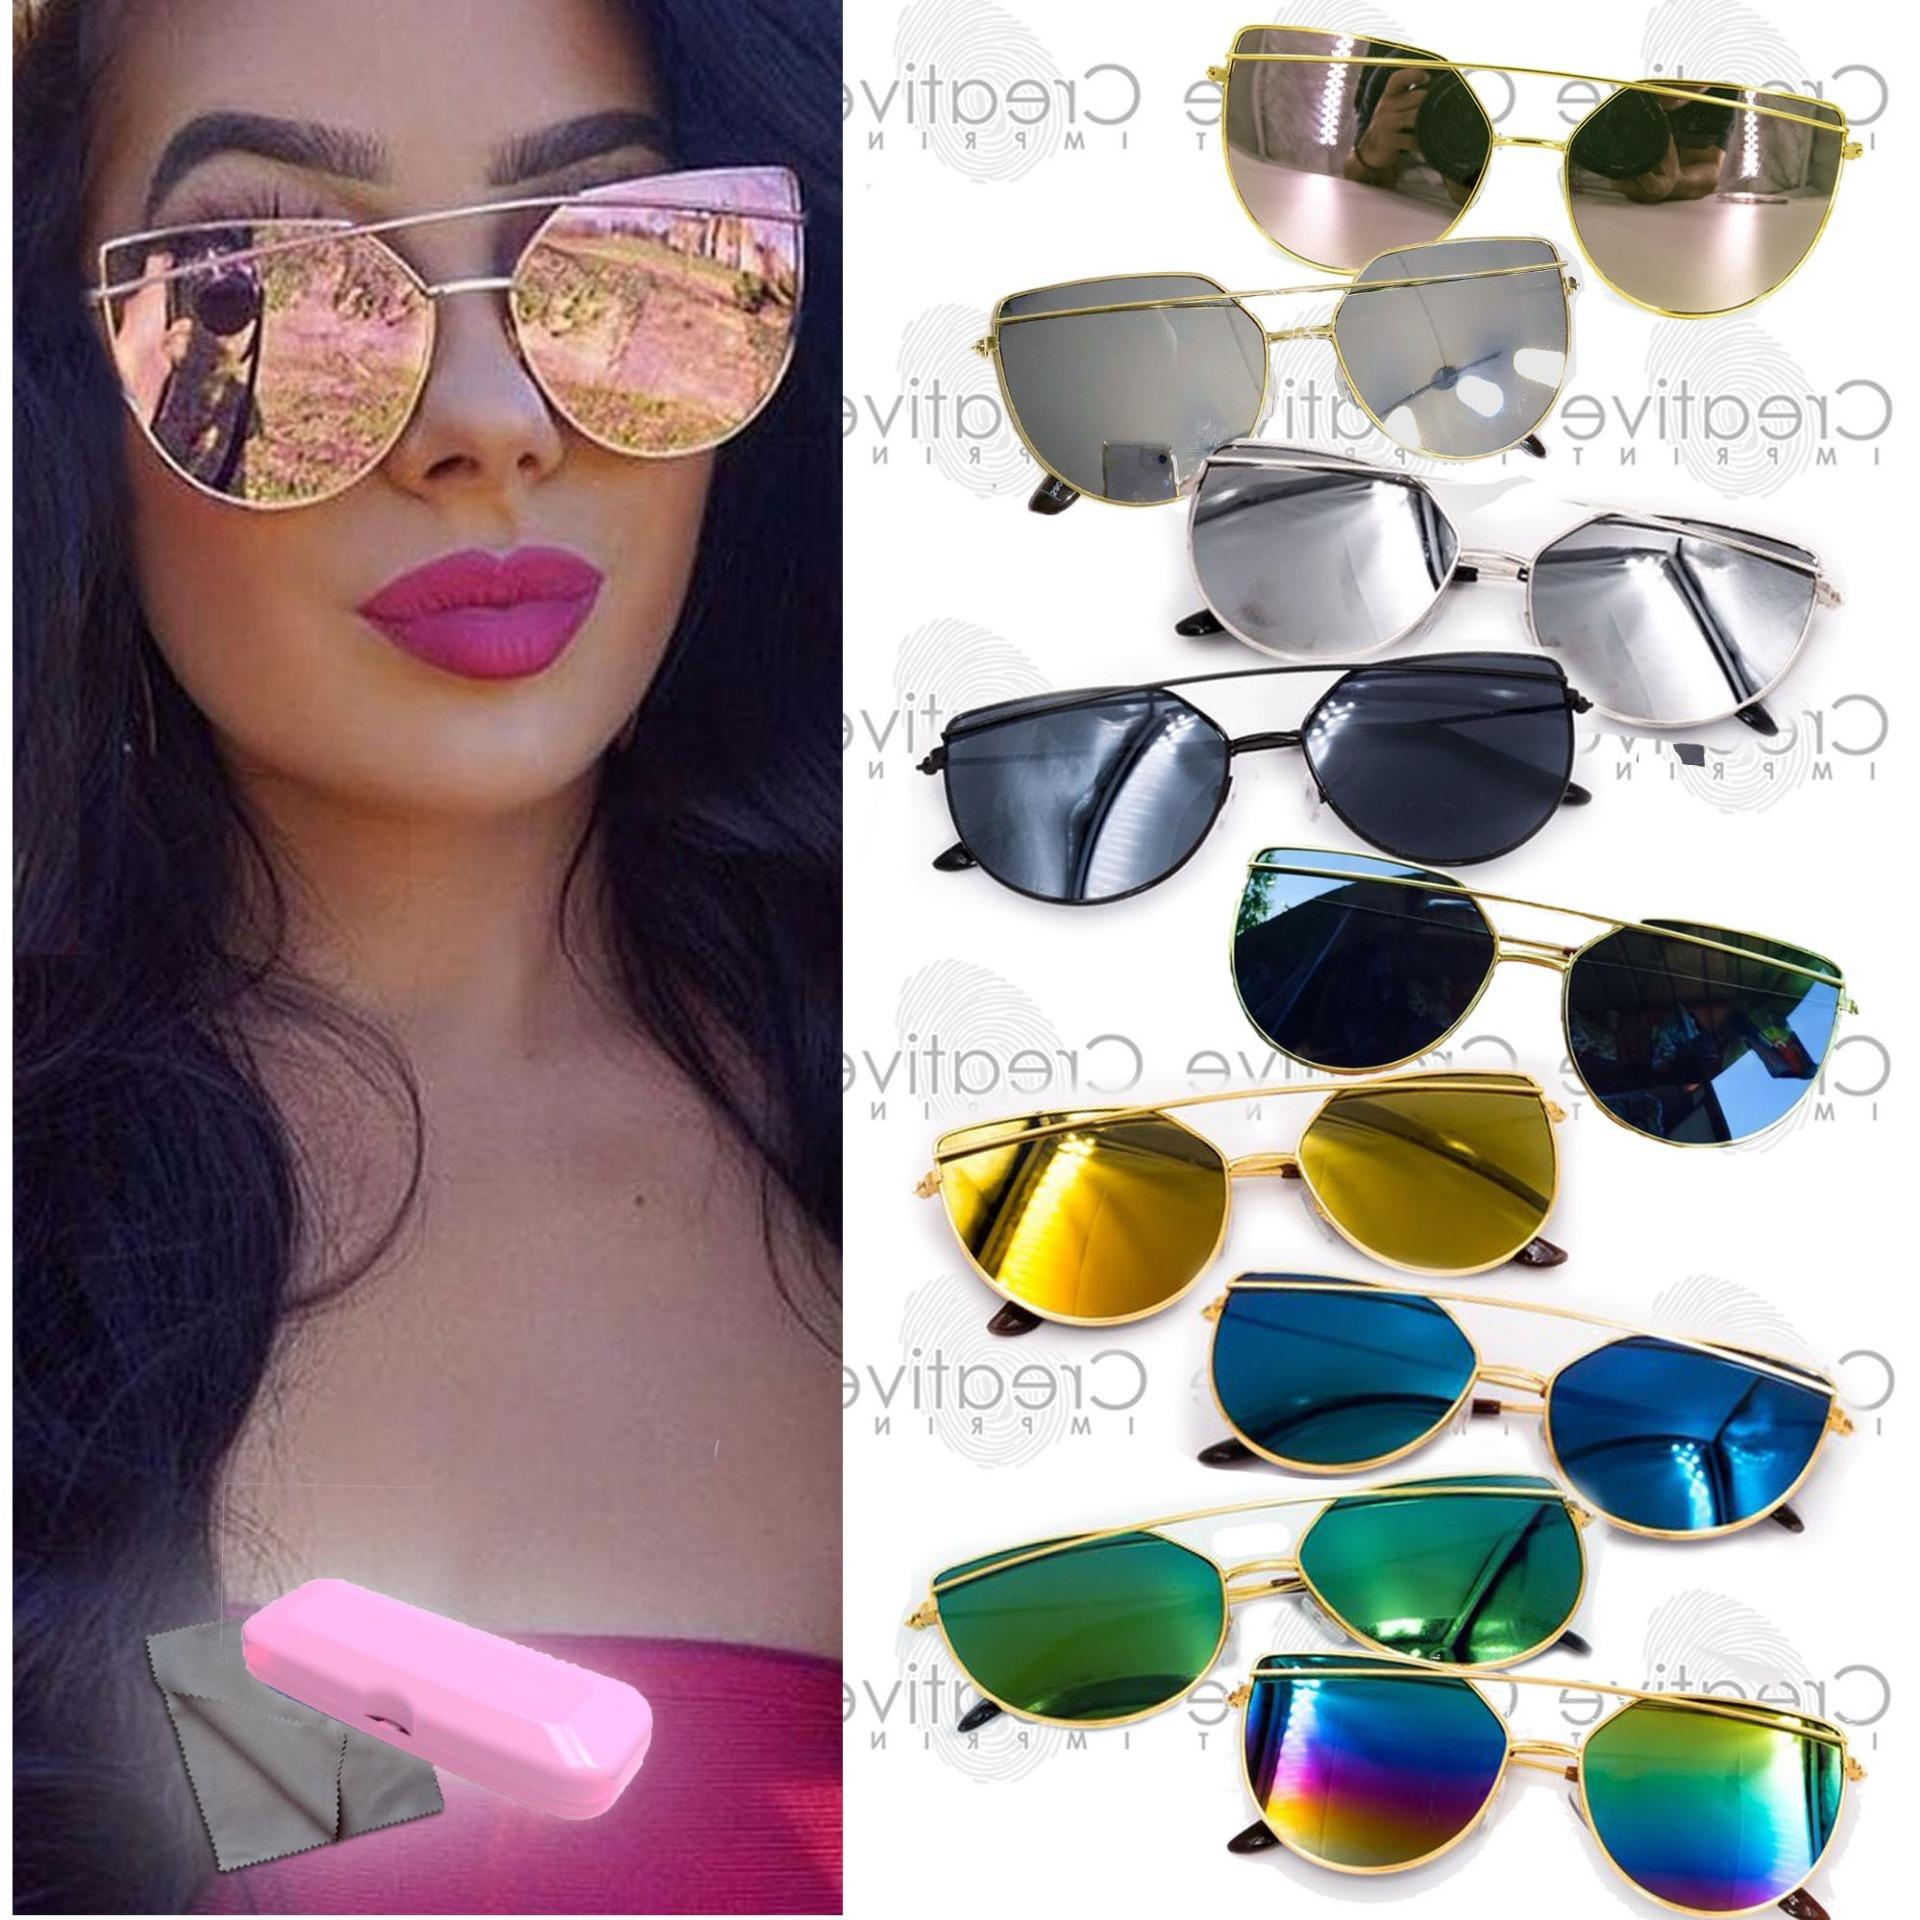 3b1bacd5c9 Double Bridge Cat Eye Flat Sunnies Sunglasses (FREE CASE WIPER) Shades  Light Metal Lens